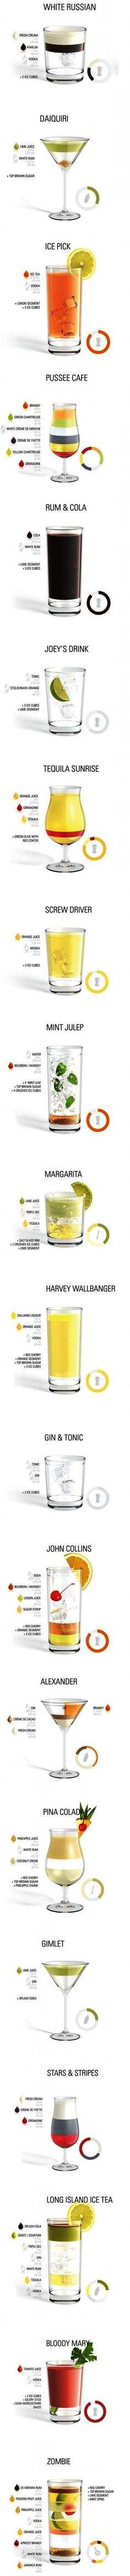 The Ultimate Visual Guide To Making A Drink